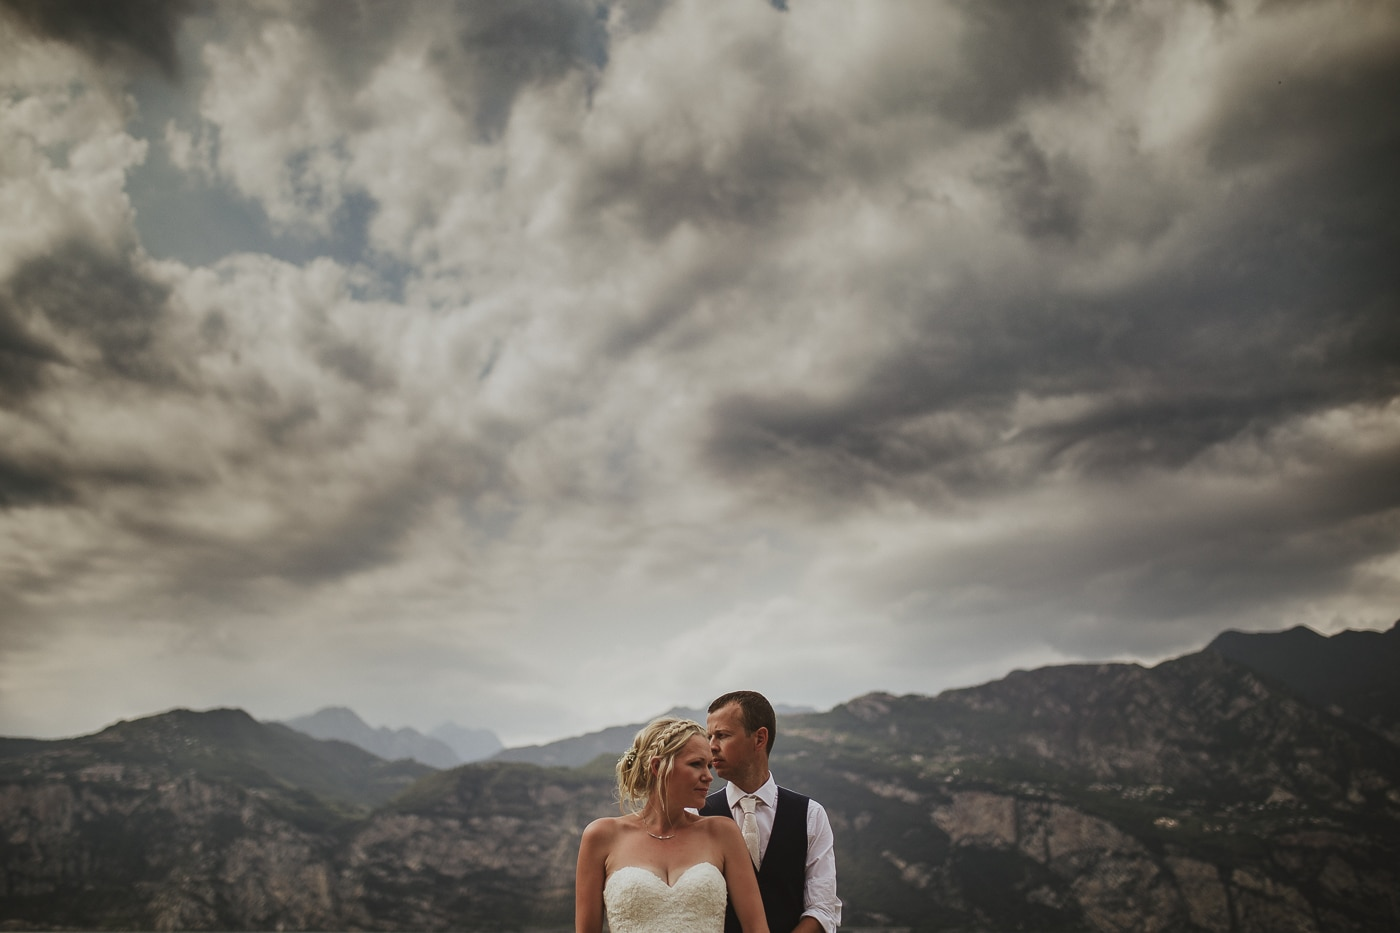 Bride with braided hair and groom in waistcoat standing amid mountains and grey cloudy skies by Joshua Wyborn